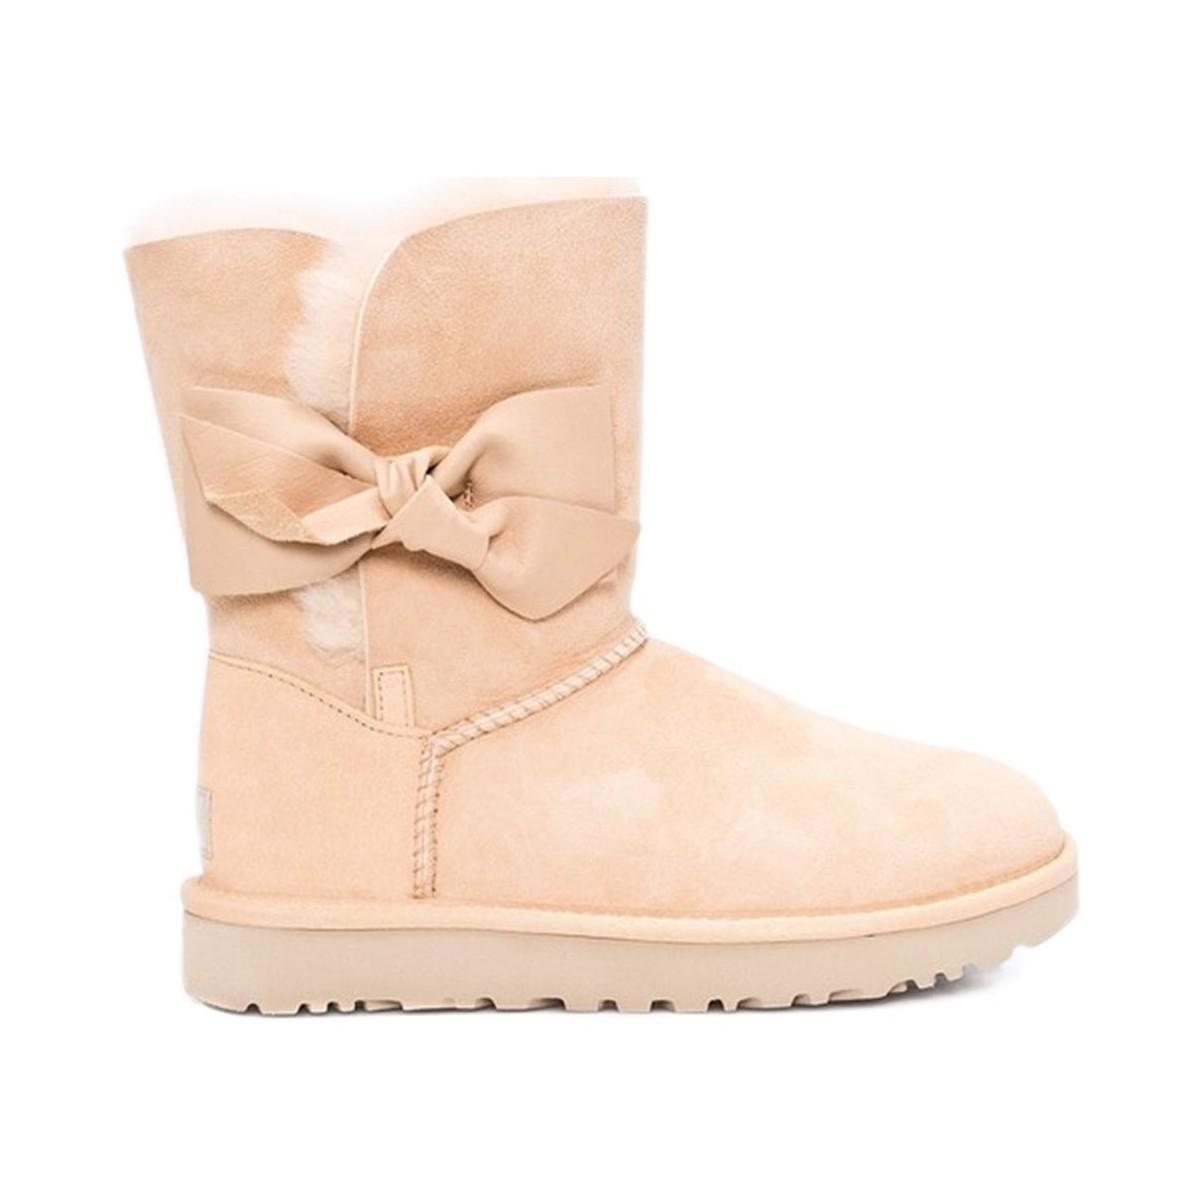 dcbcab205b9 UGG Daelynn Women's Snow Boots In Beige in Natural - Lyst